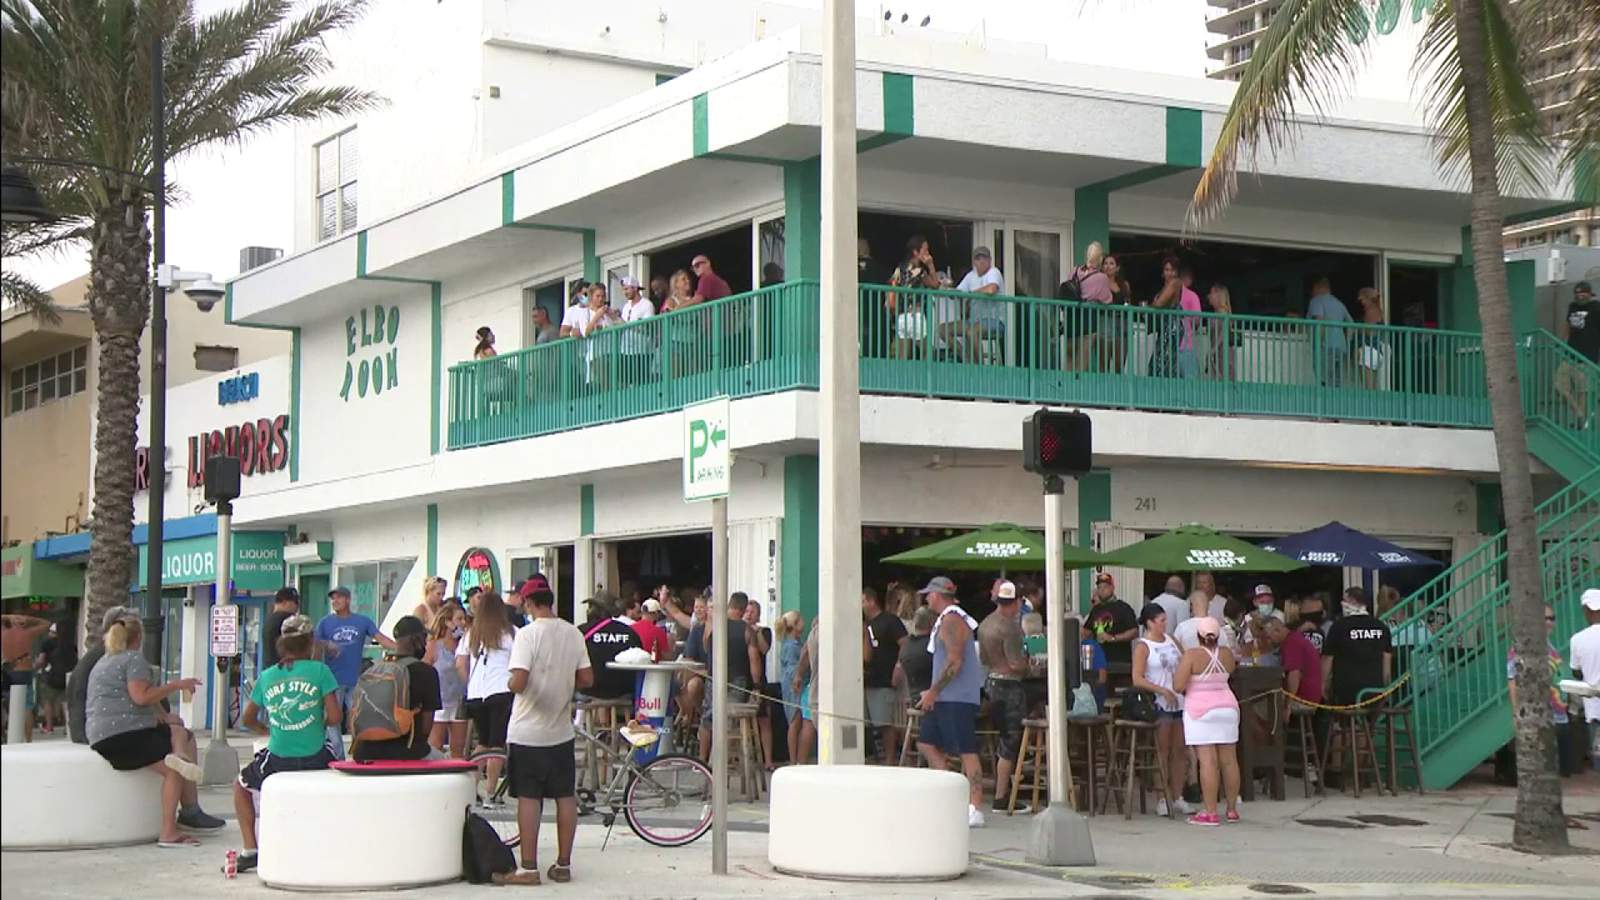 South Florida bars packed after Gov. gives OK for Phase 3 reopening thumbnail